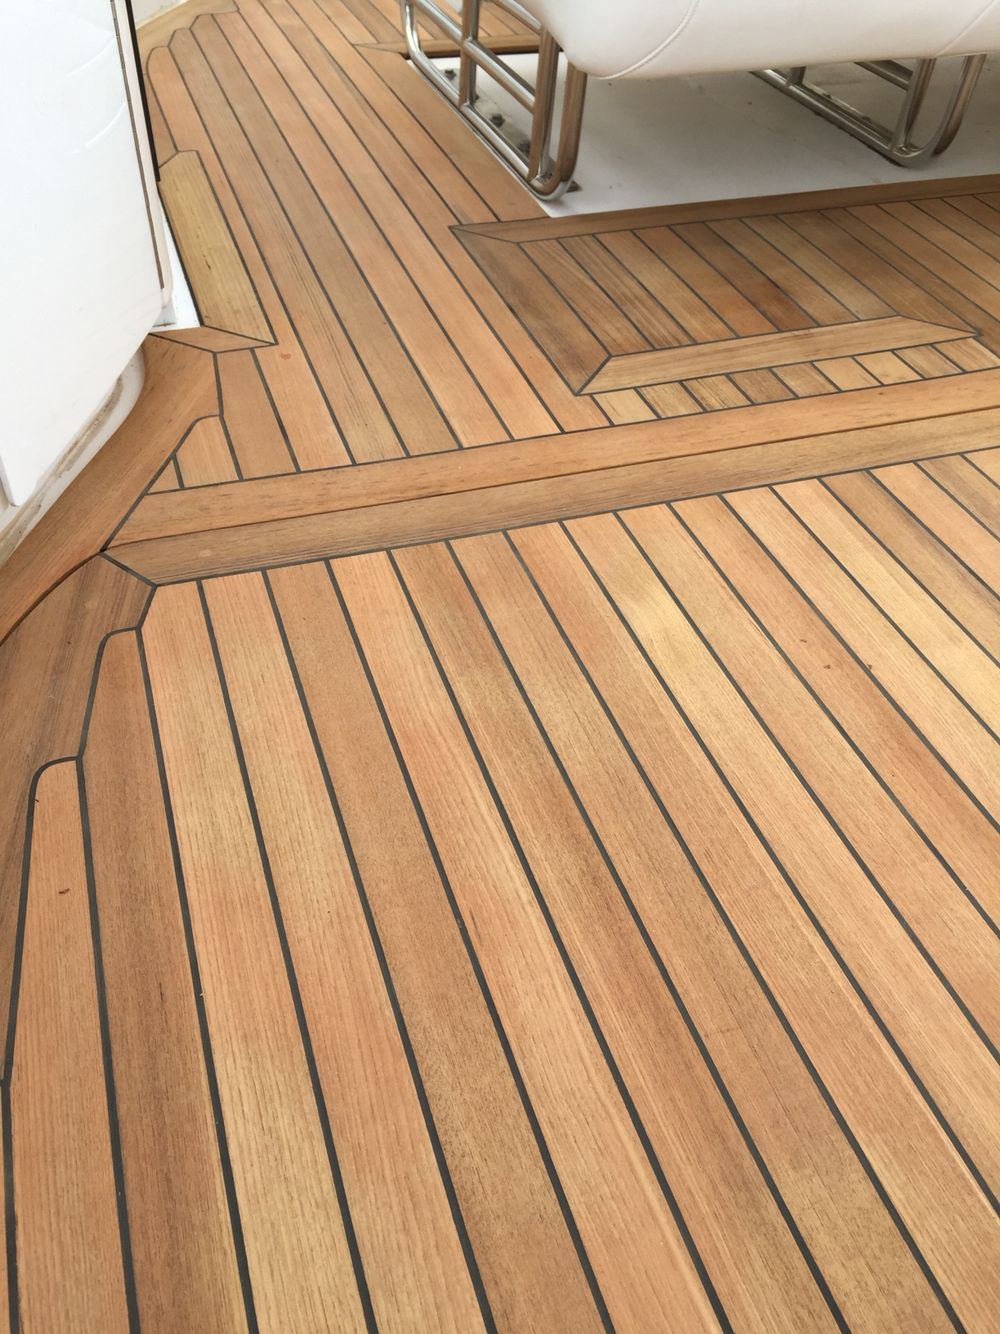 New Teak Decking Cockpit On Fountain Go Fast Boat Teak